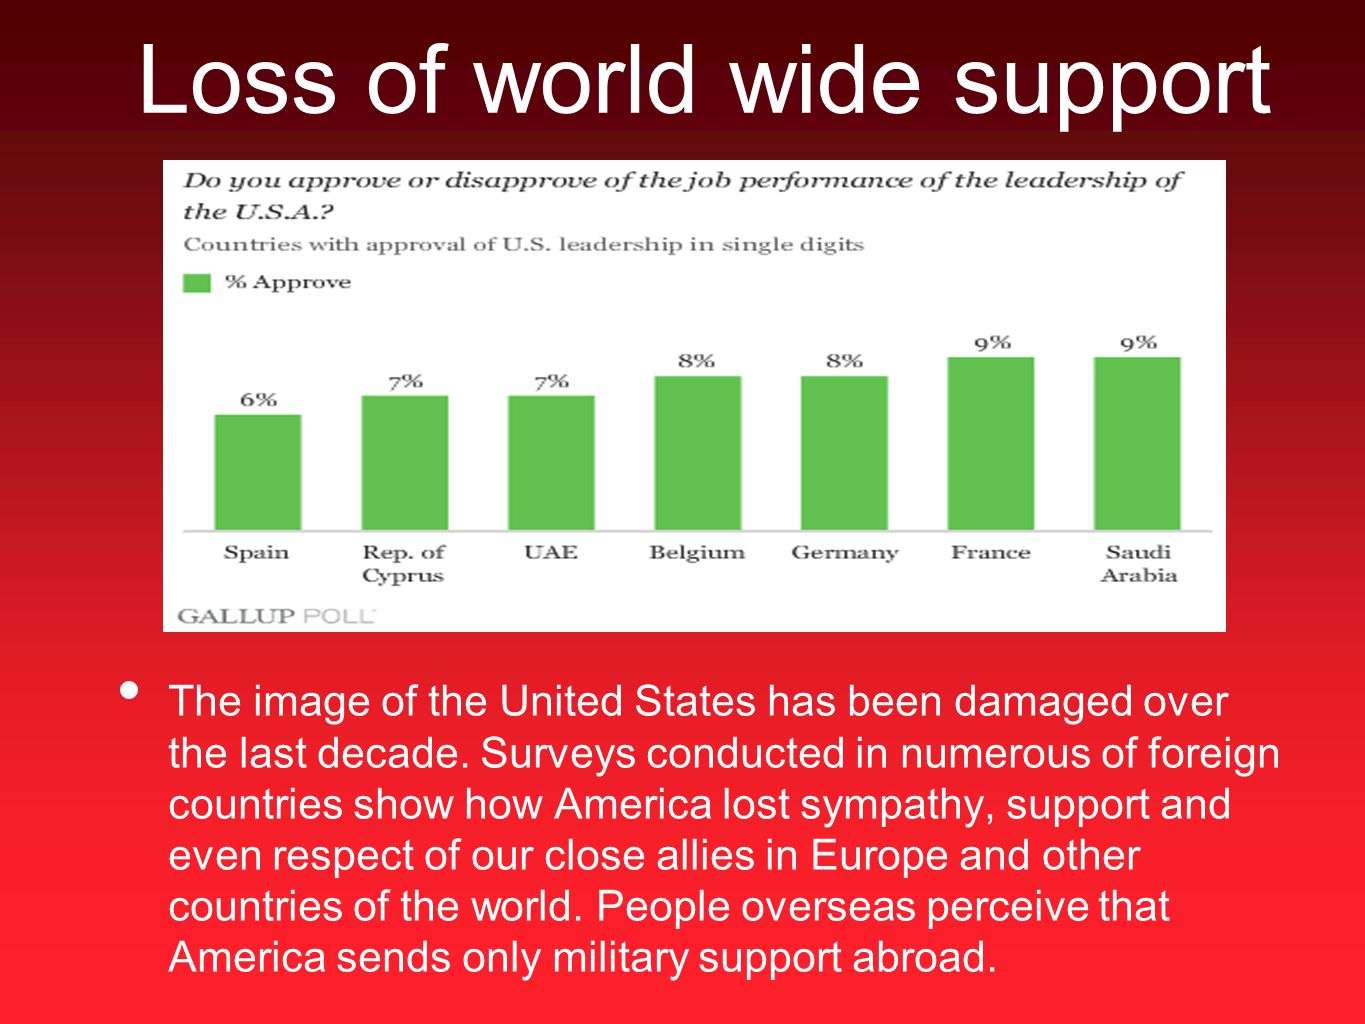 The image of the United States has been damaged over the last decade. Surveys conducted in numerous of foreign countries show how America lost sympath